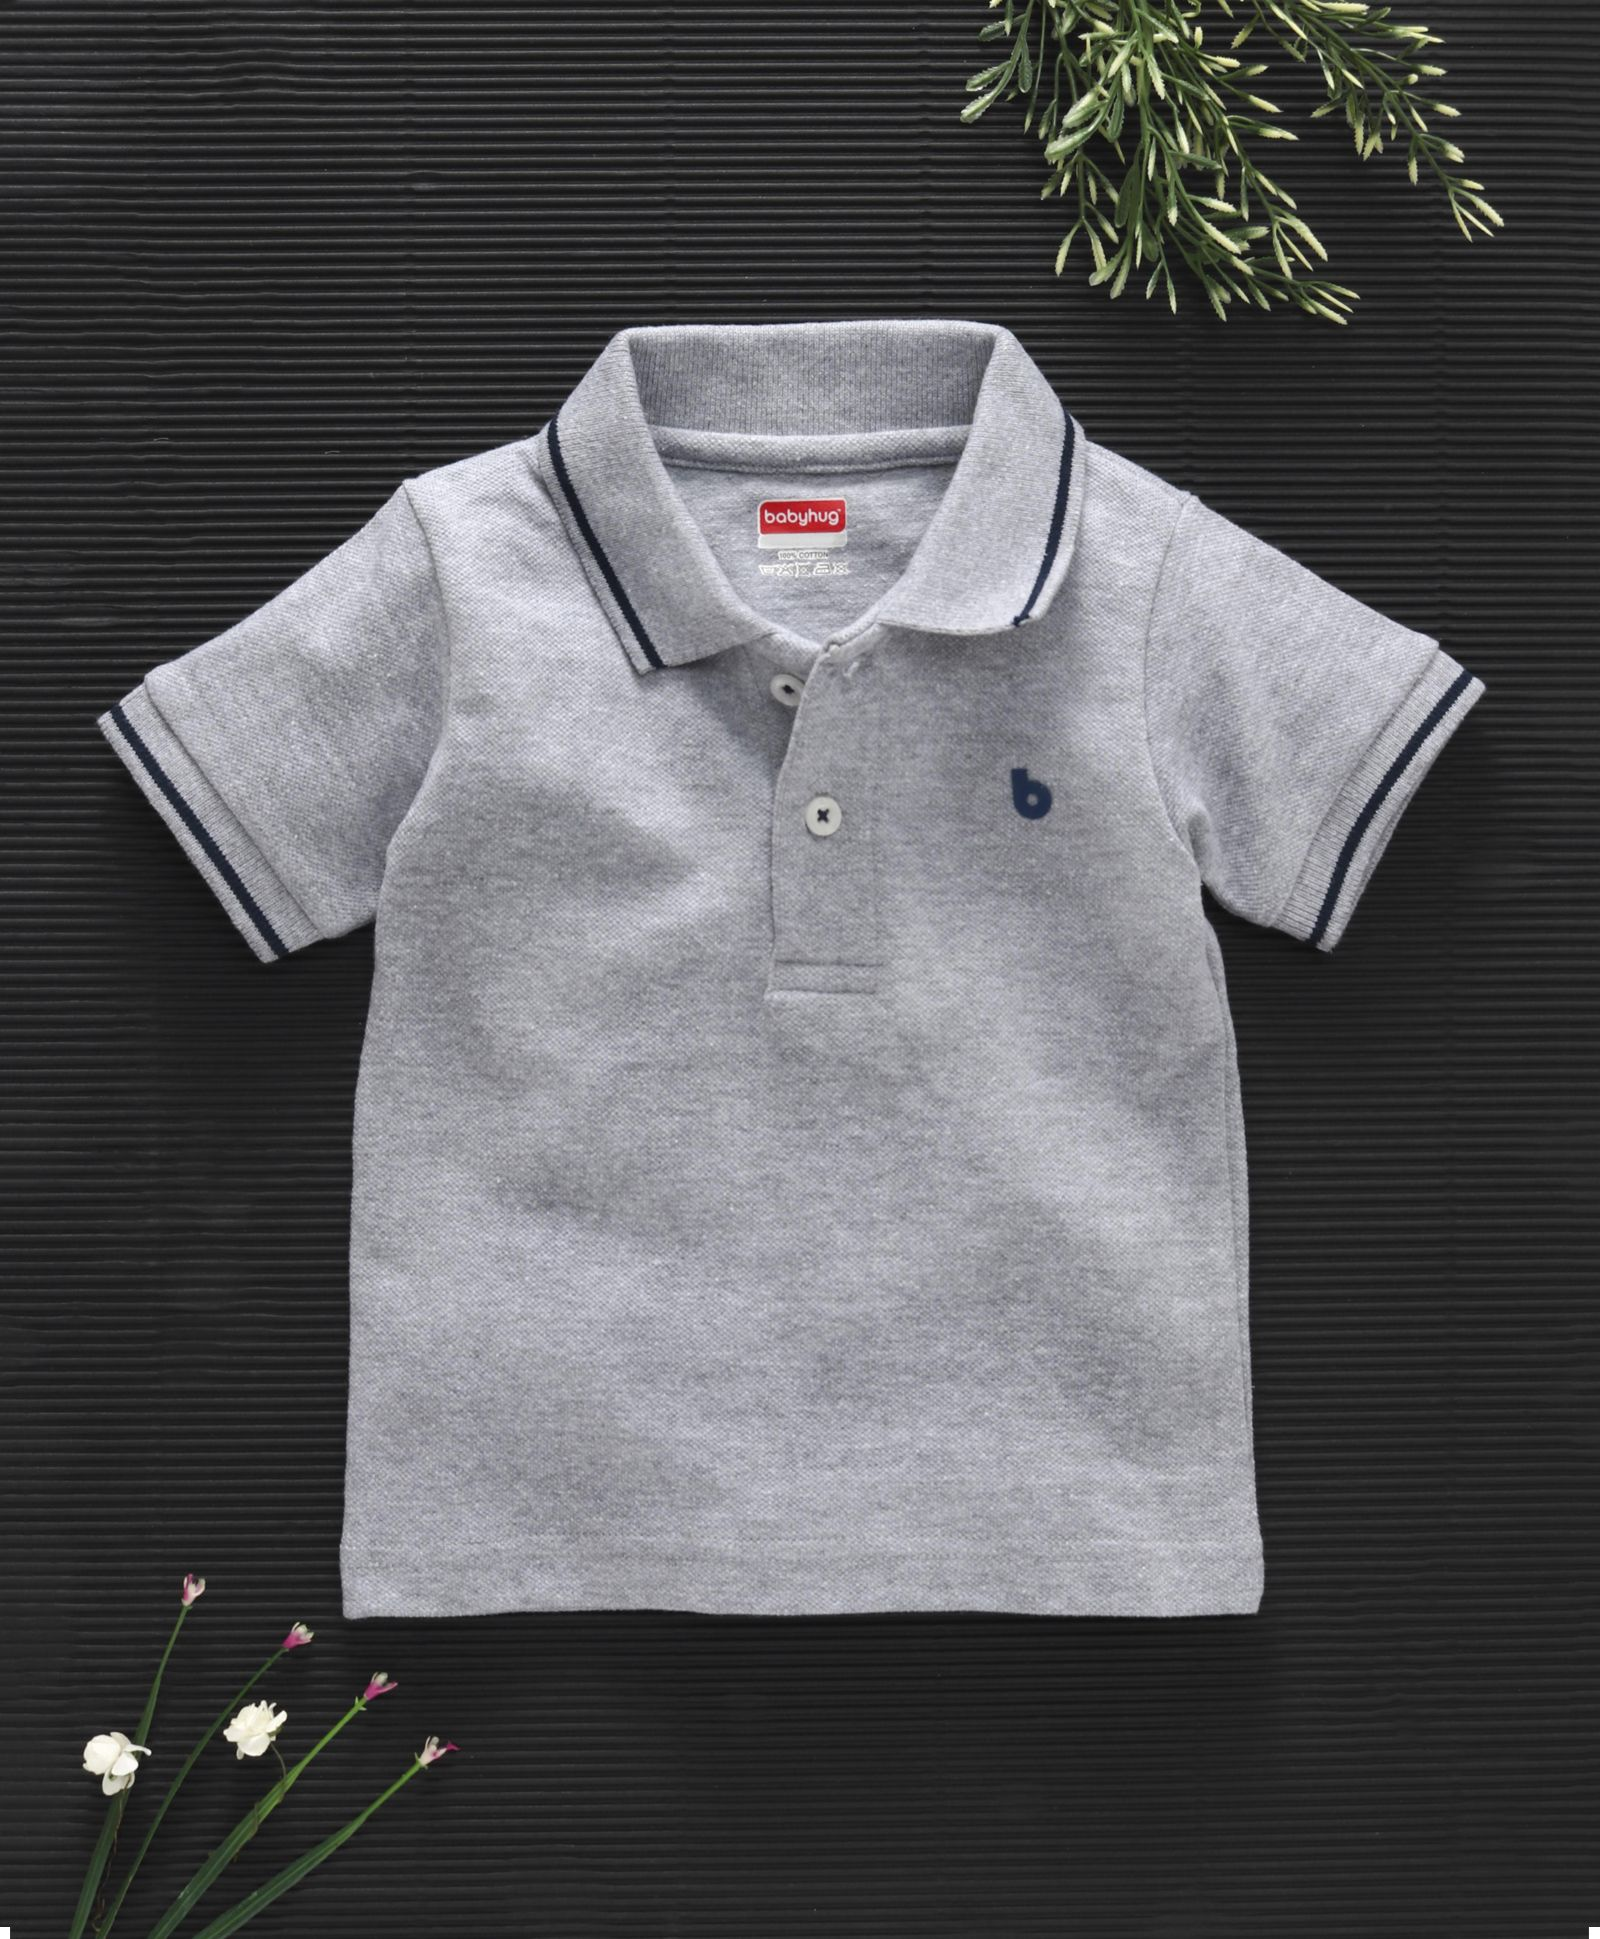 371e4b0eec Buy Babyhug Half Sleeves Cotton Polo TShirt Grey for Boys (4-5 Years)  Online in India, Shop at FirstCry.com - 1844518